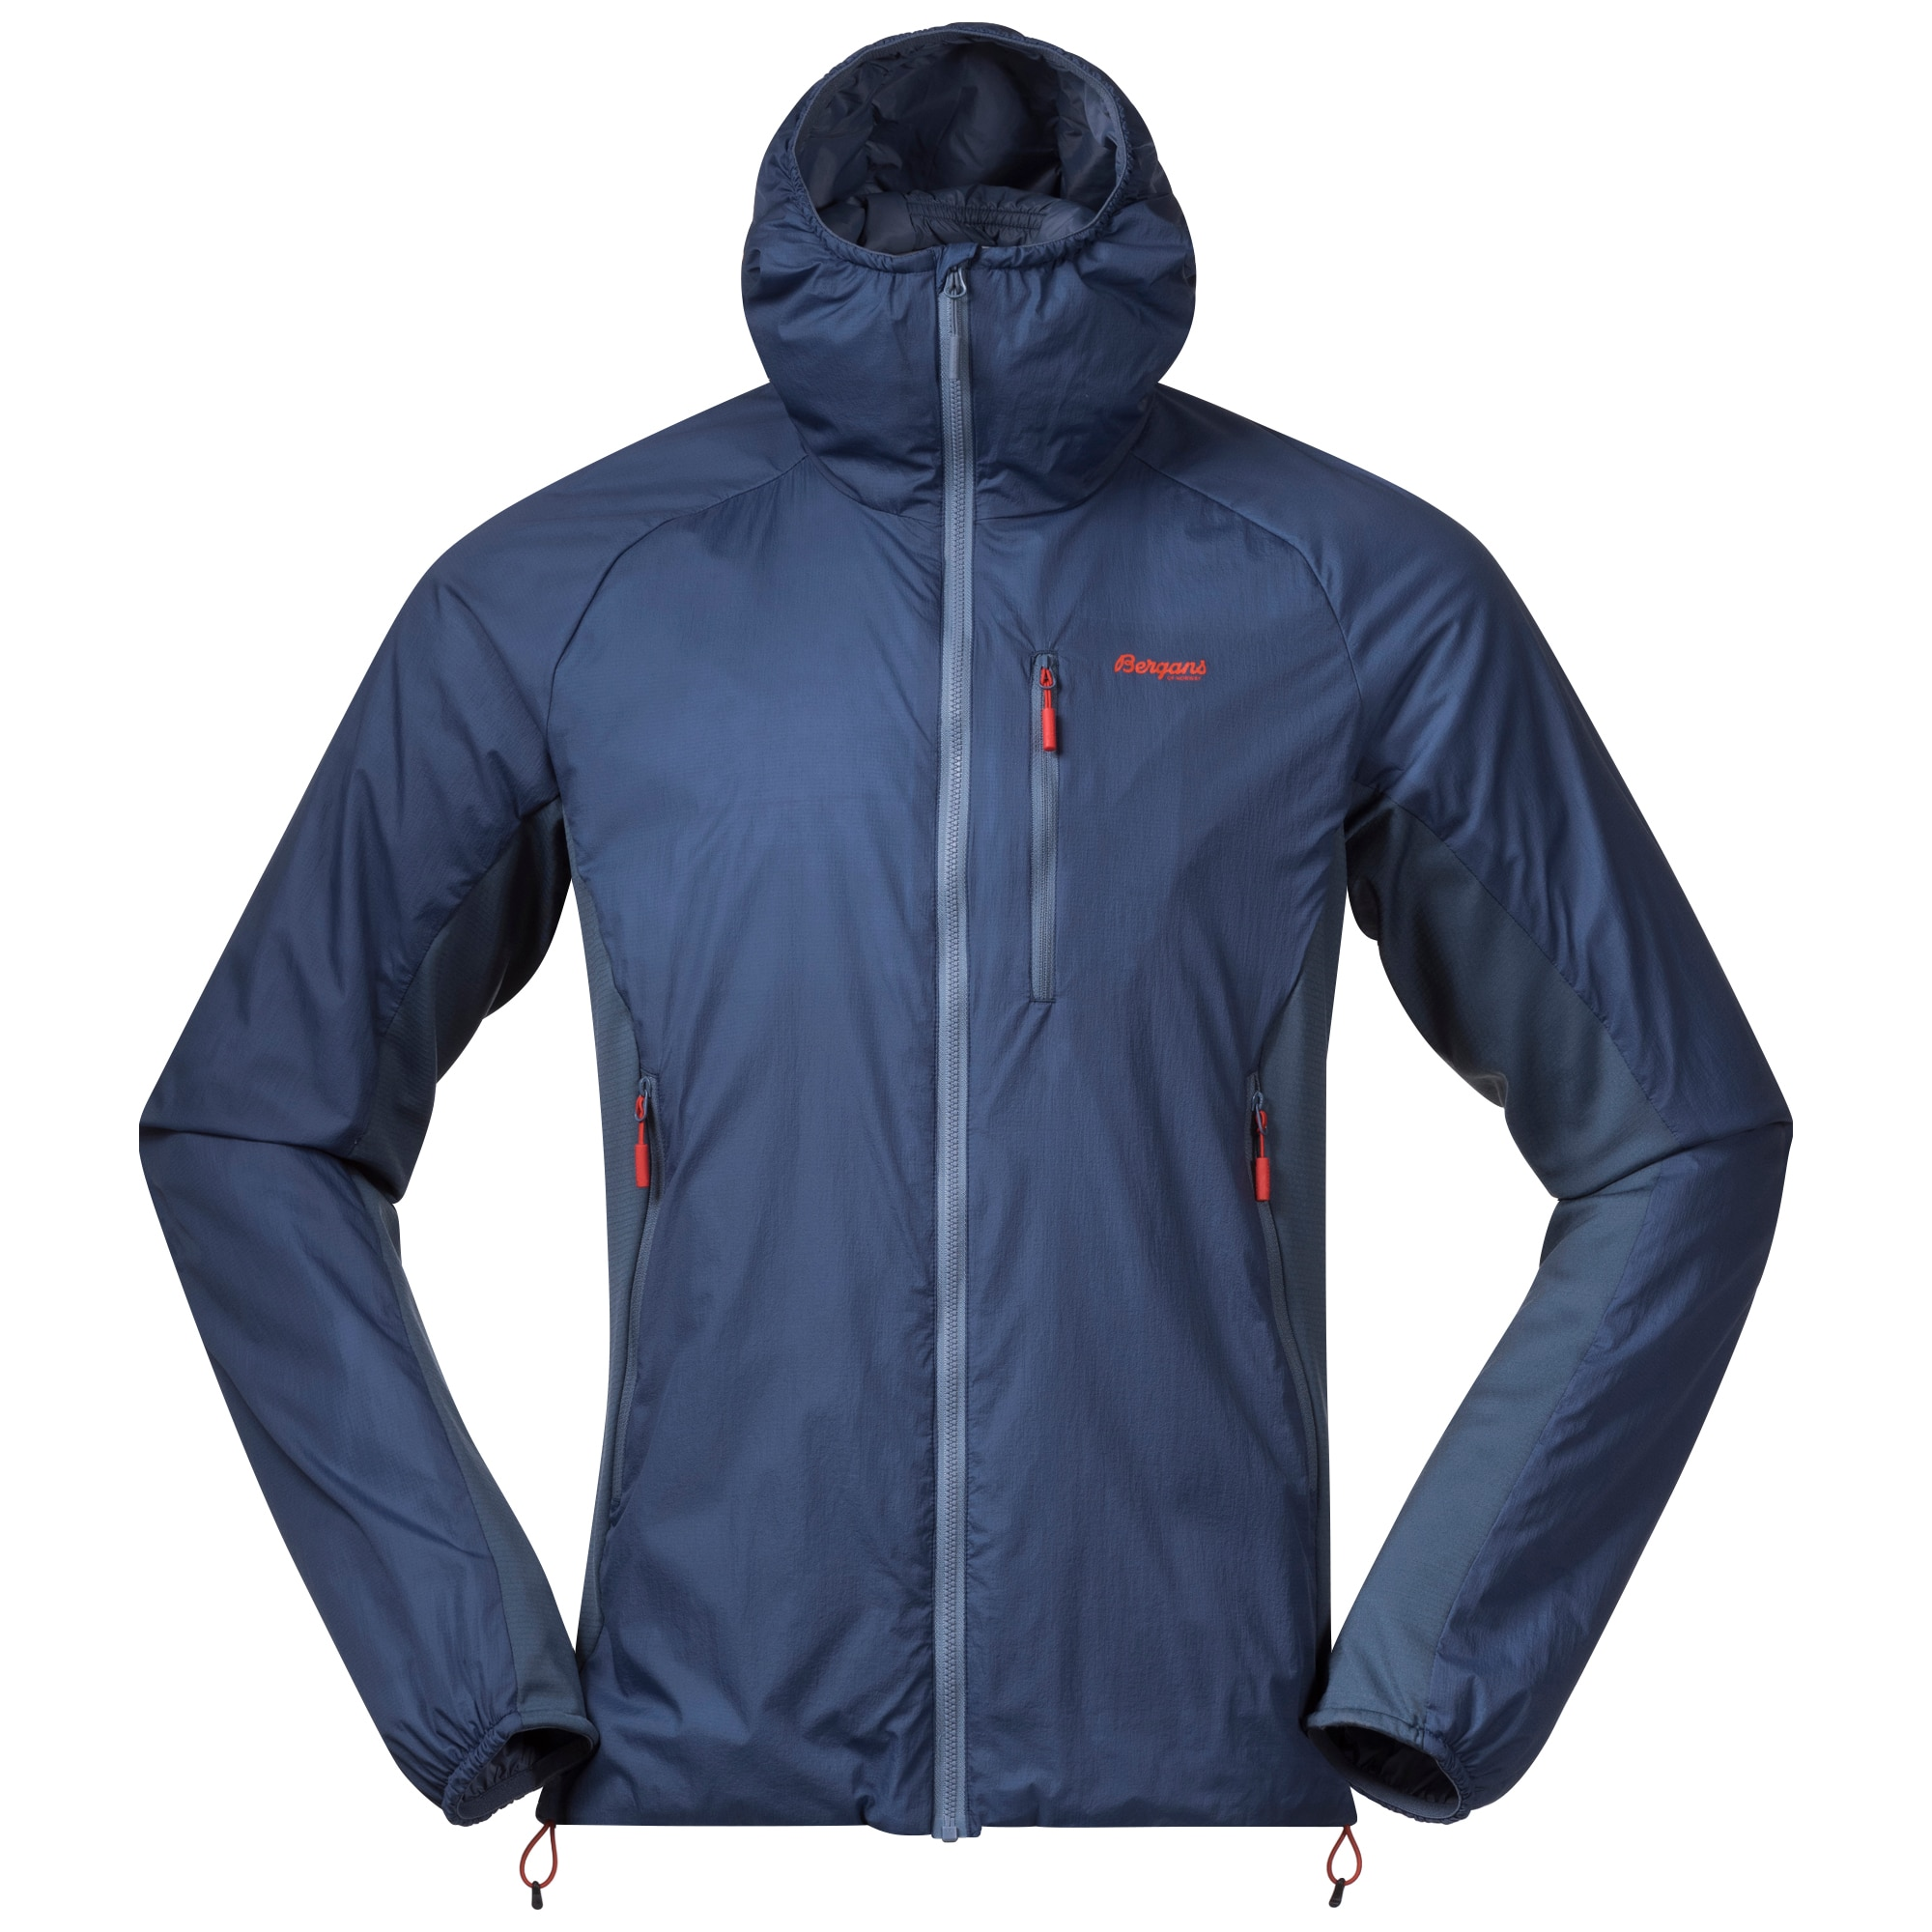 Romsdal Light Insulated Jacket